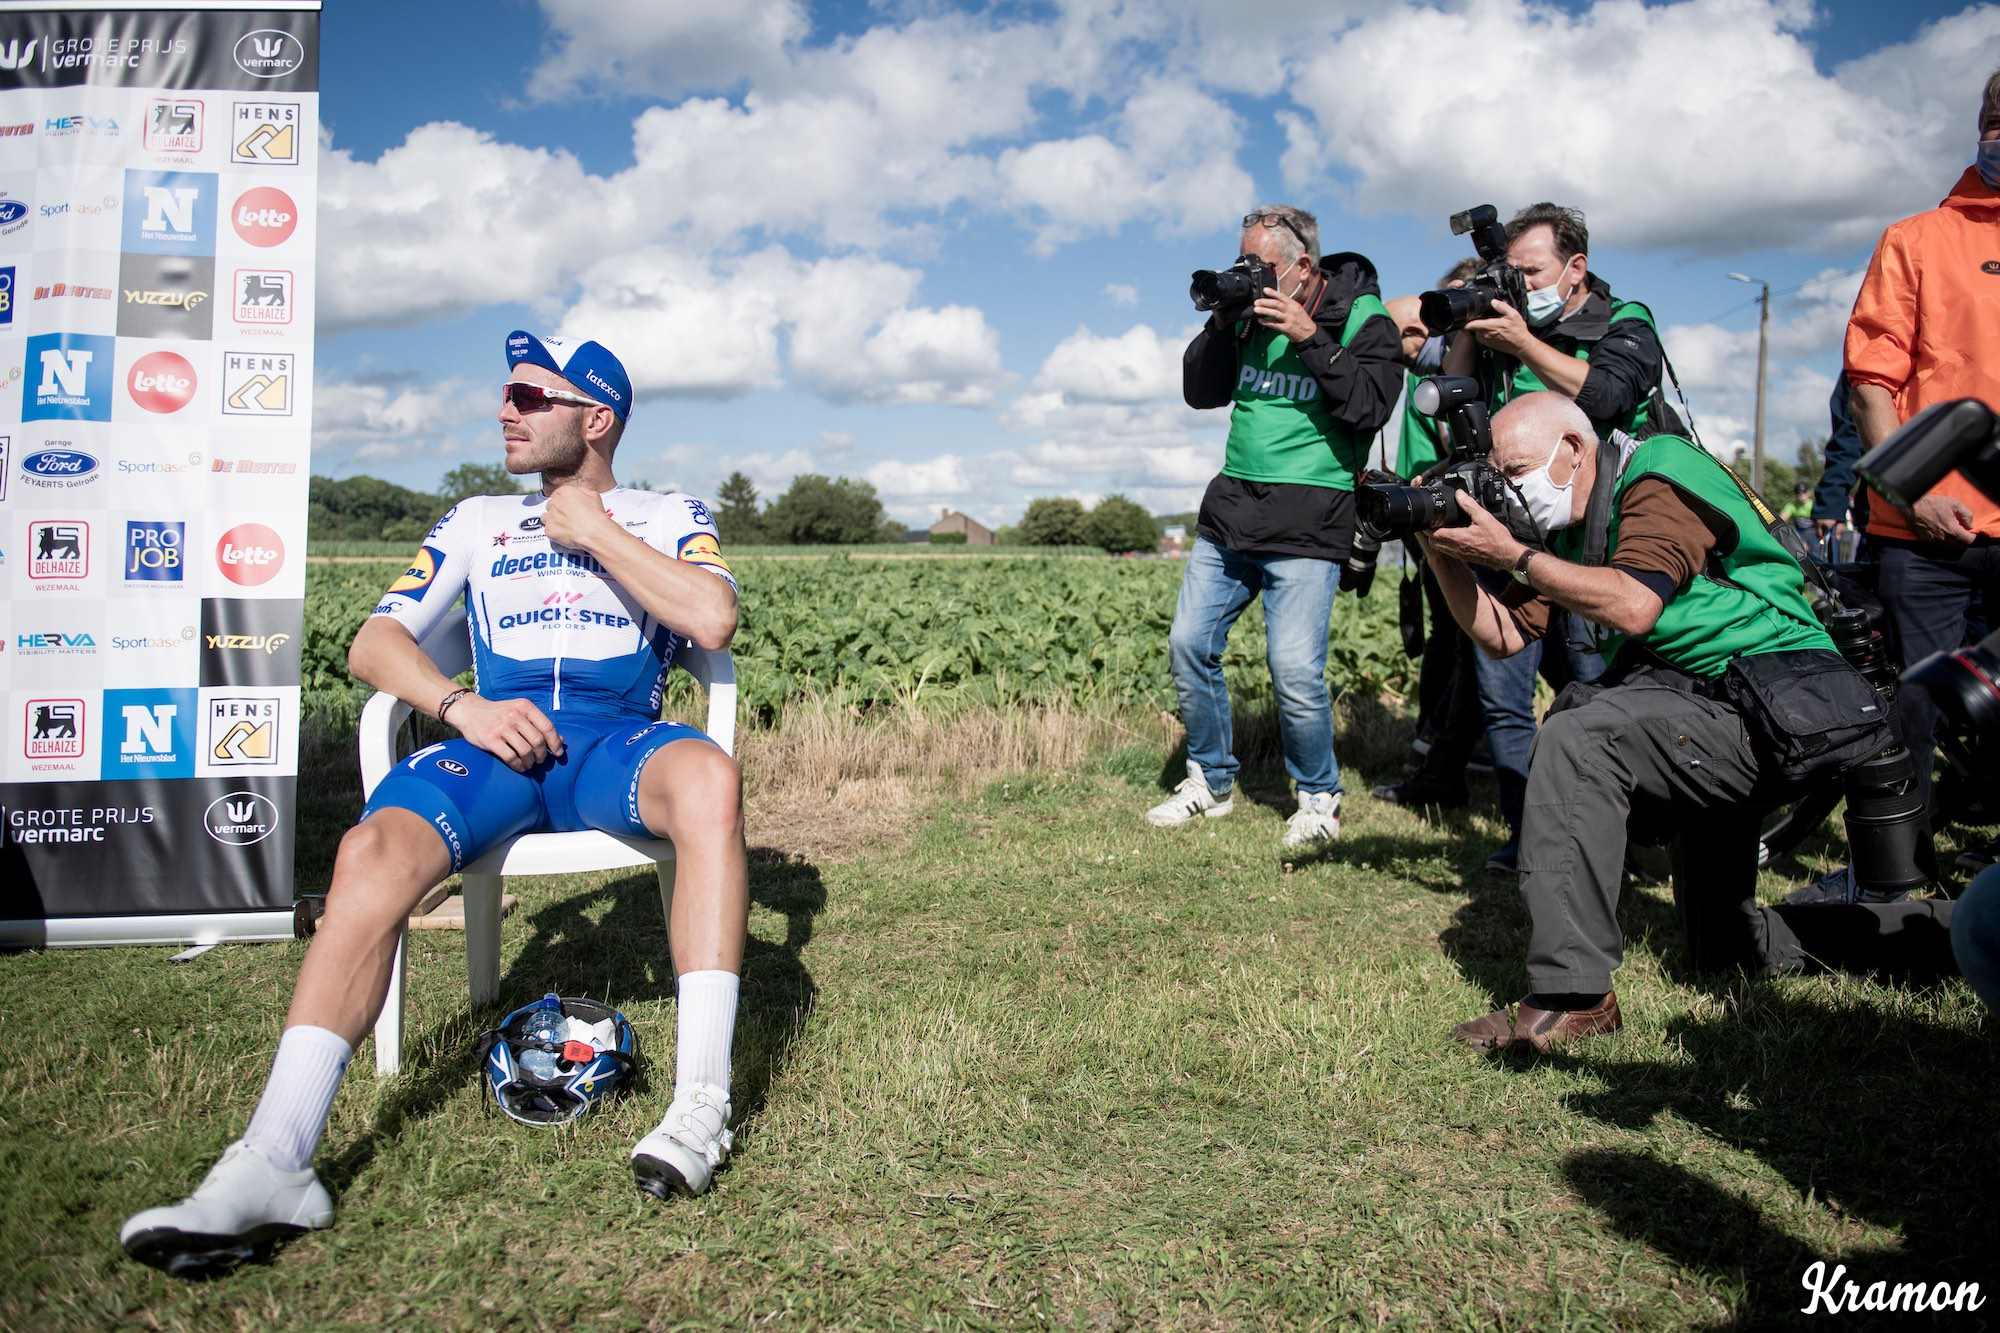 Uttrup Ludwig renews, Prudhomme talks Tour preparations: Daily News Digest